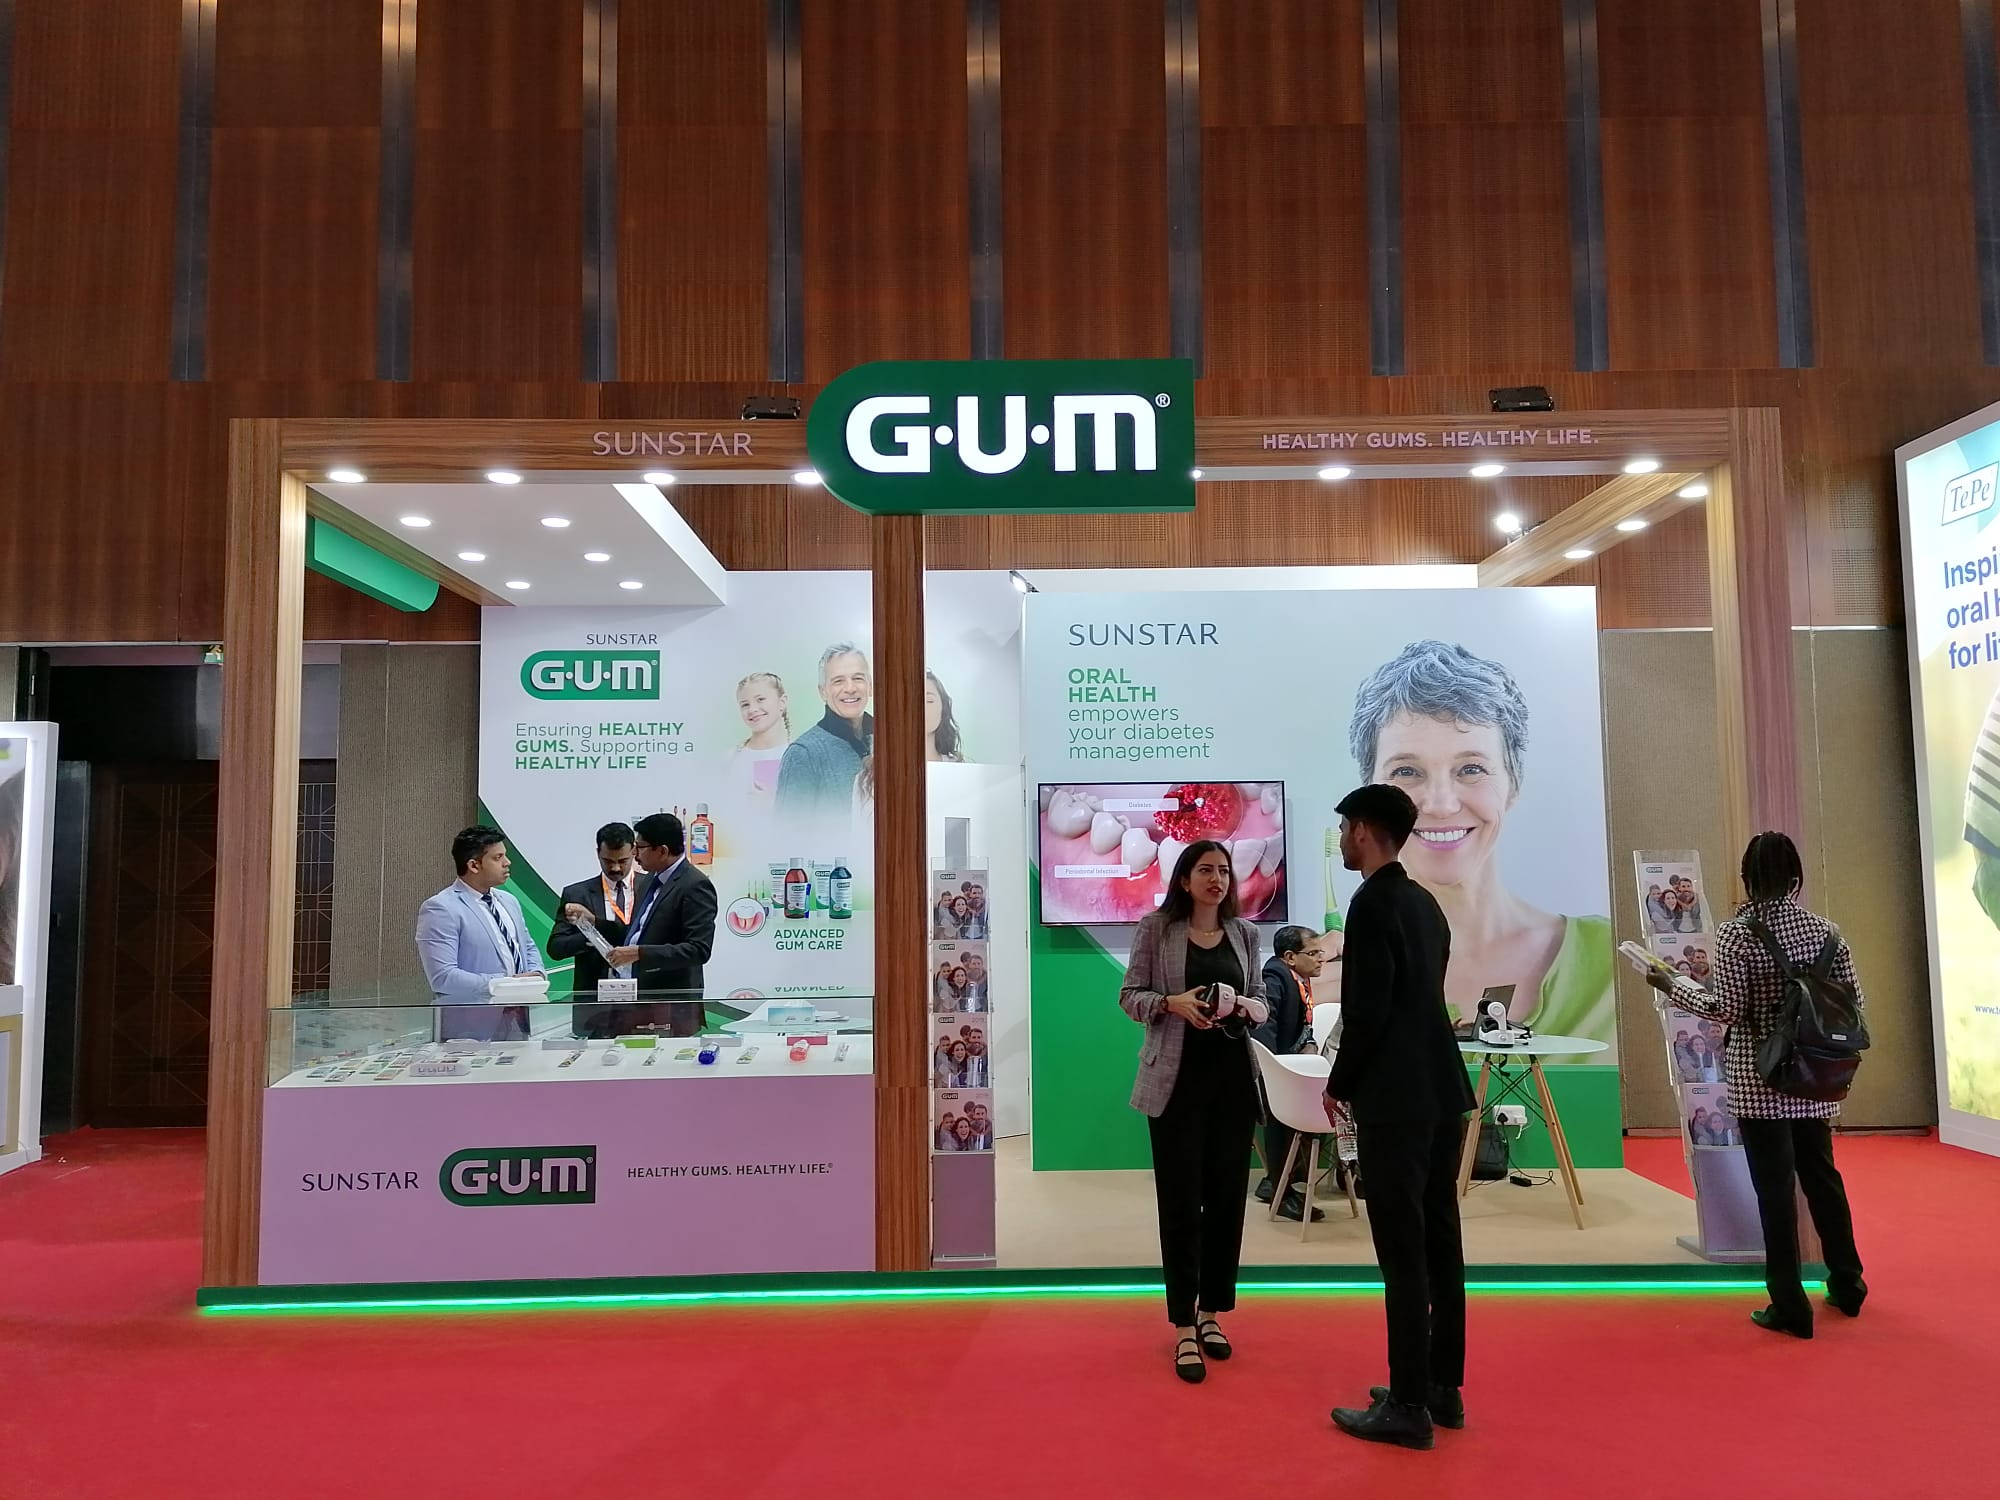 Sunstar GUM attends AEEDC in Dubai